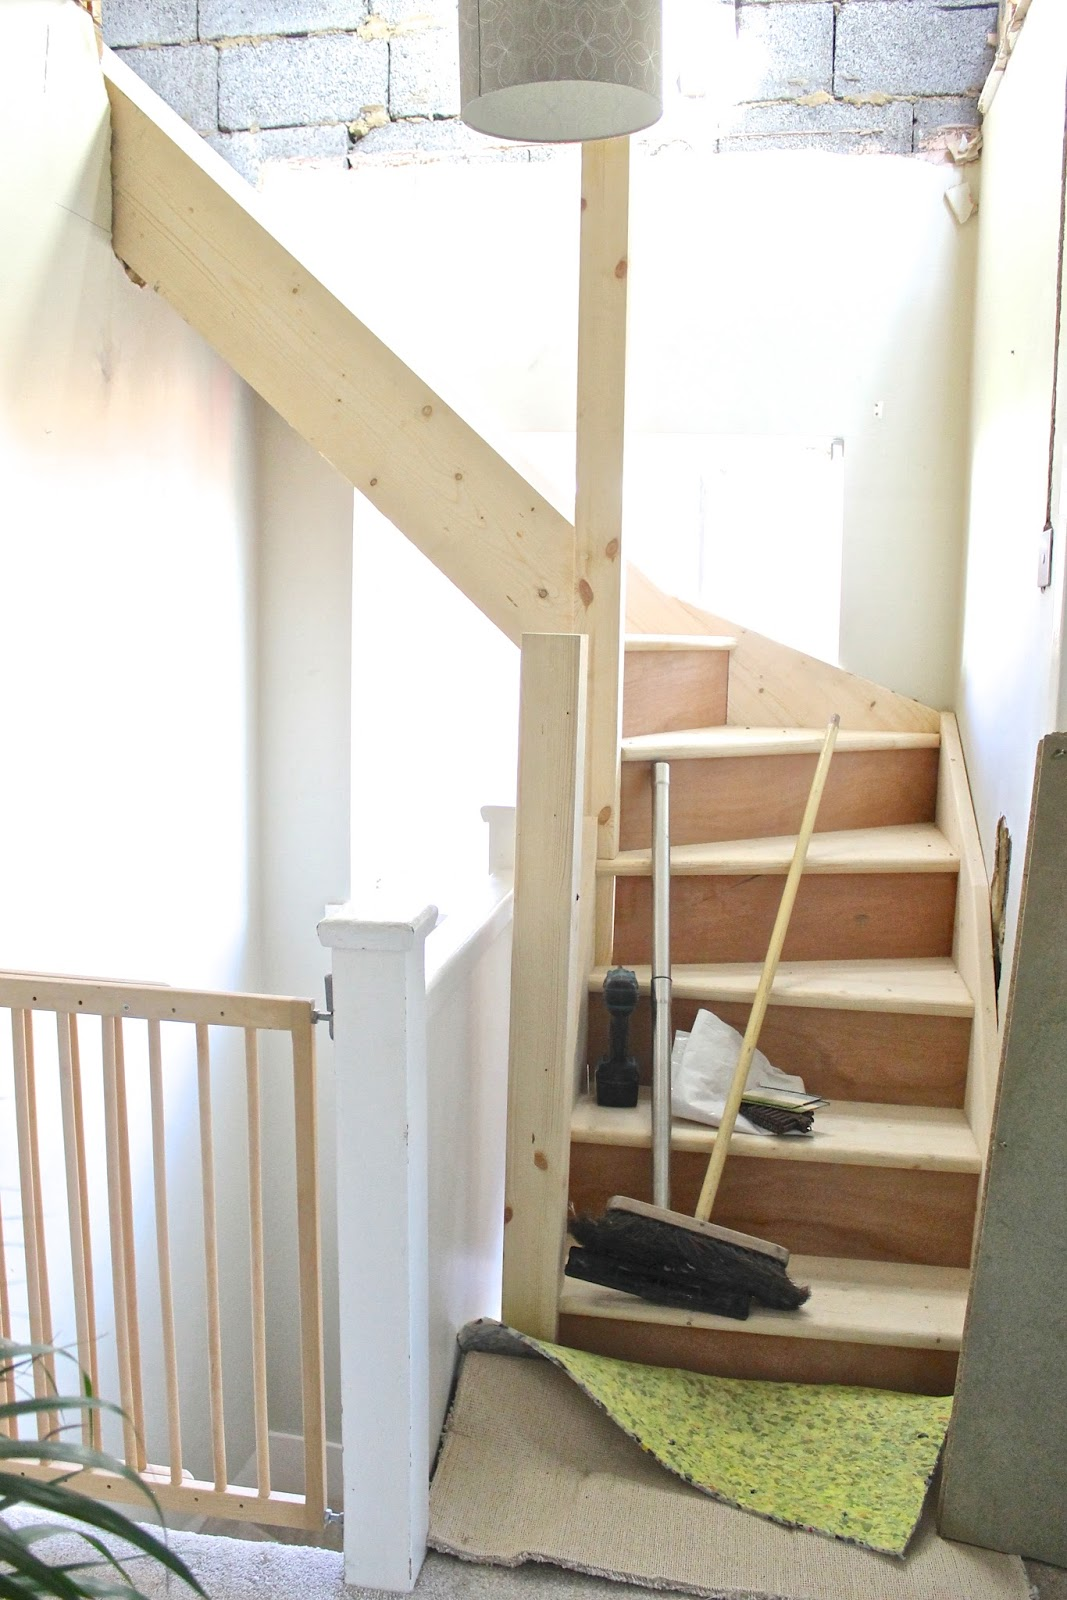 Our Loft Conversion The Stairs Are In An Update